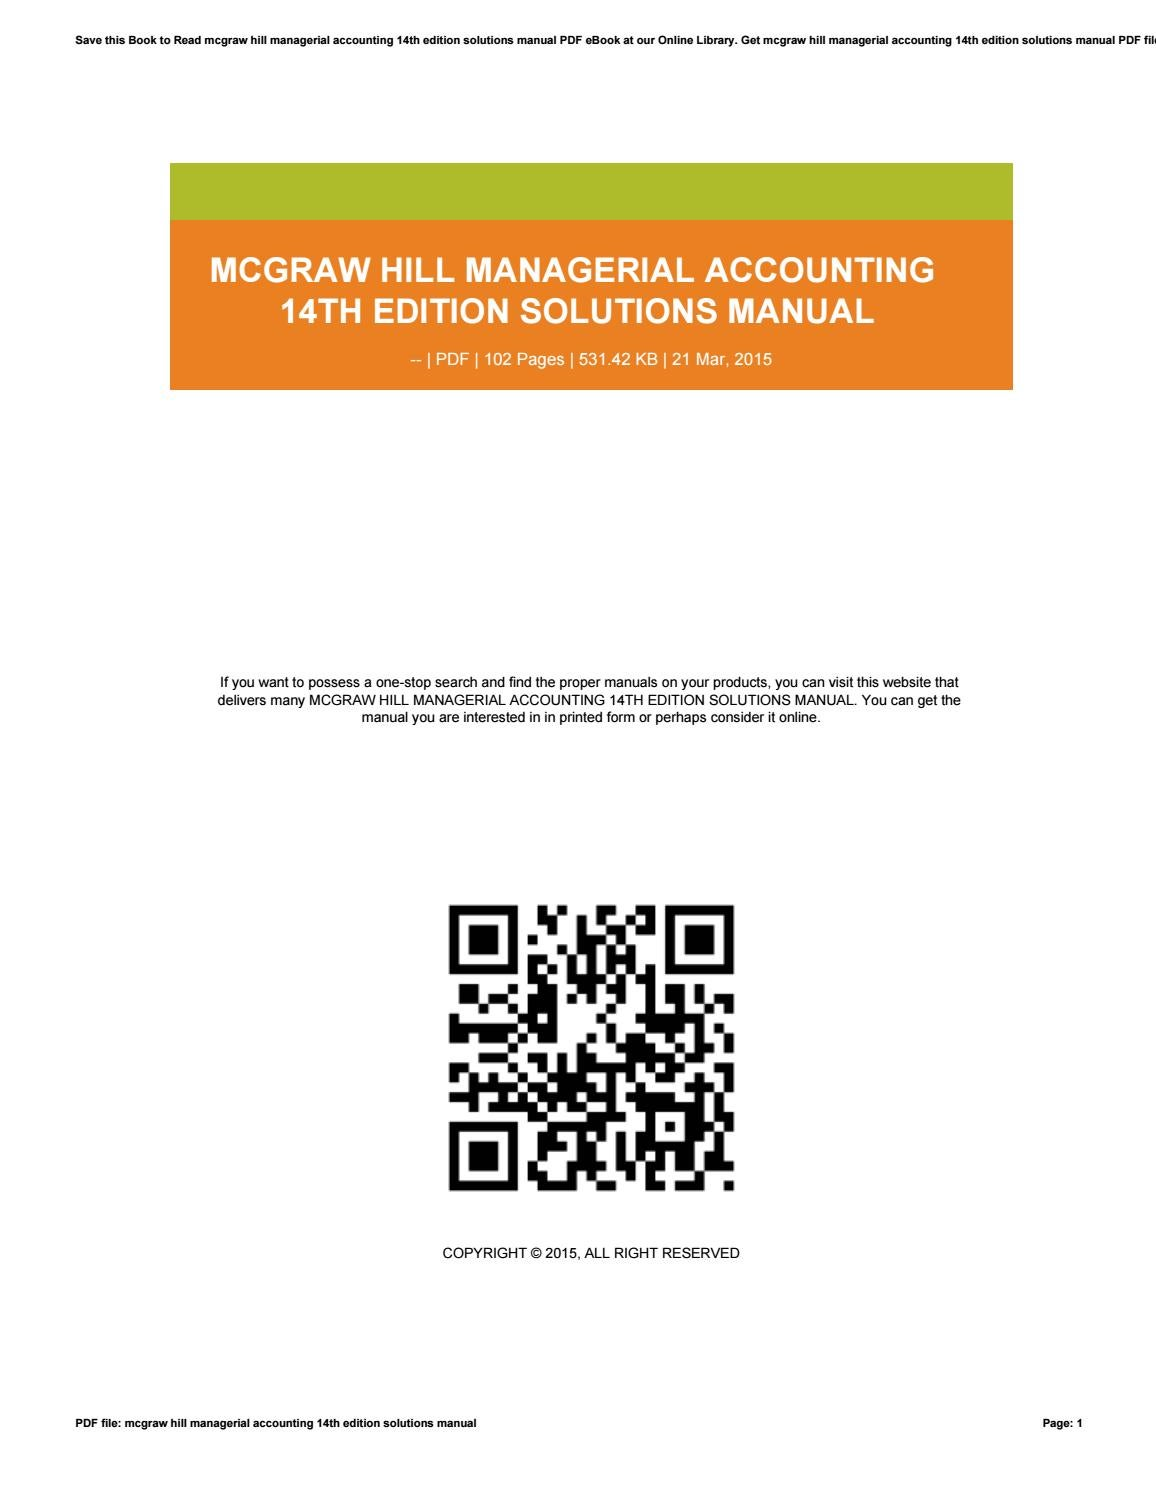 Mcgraw hill managerial accounting 14th edition solutions manual by lpo7 -  issuu